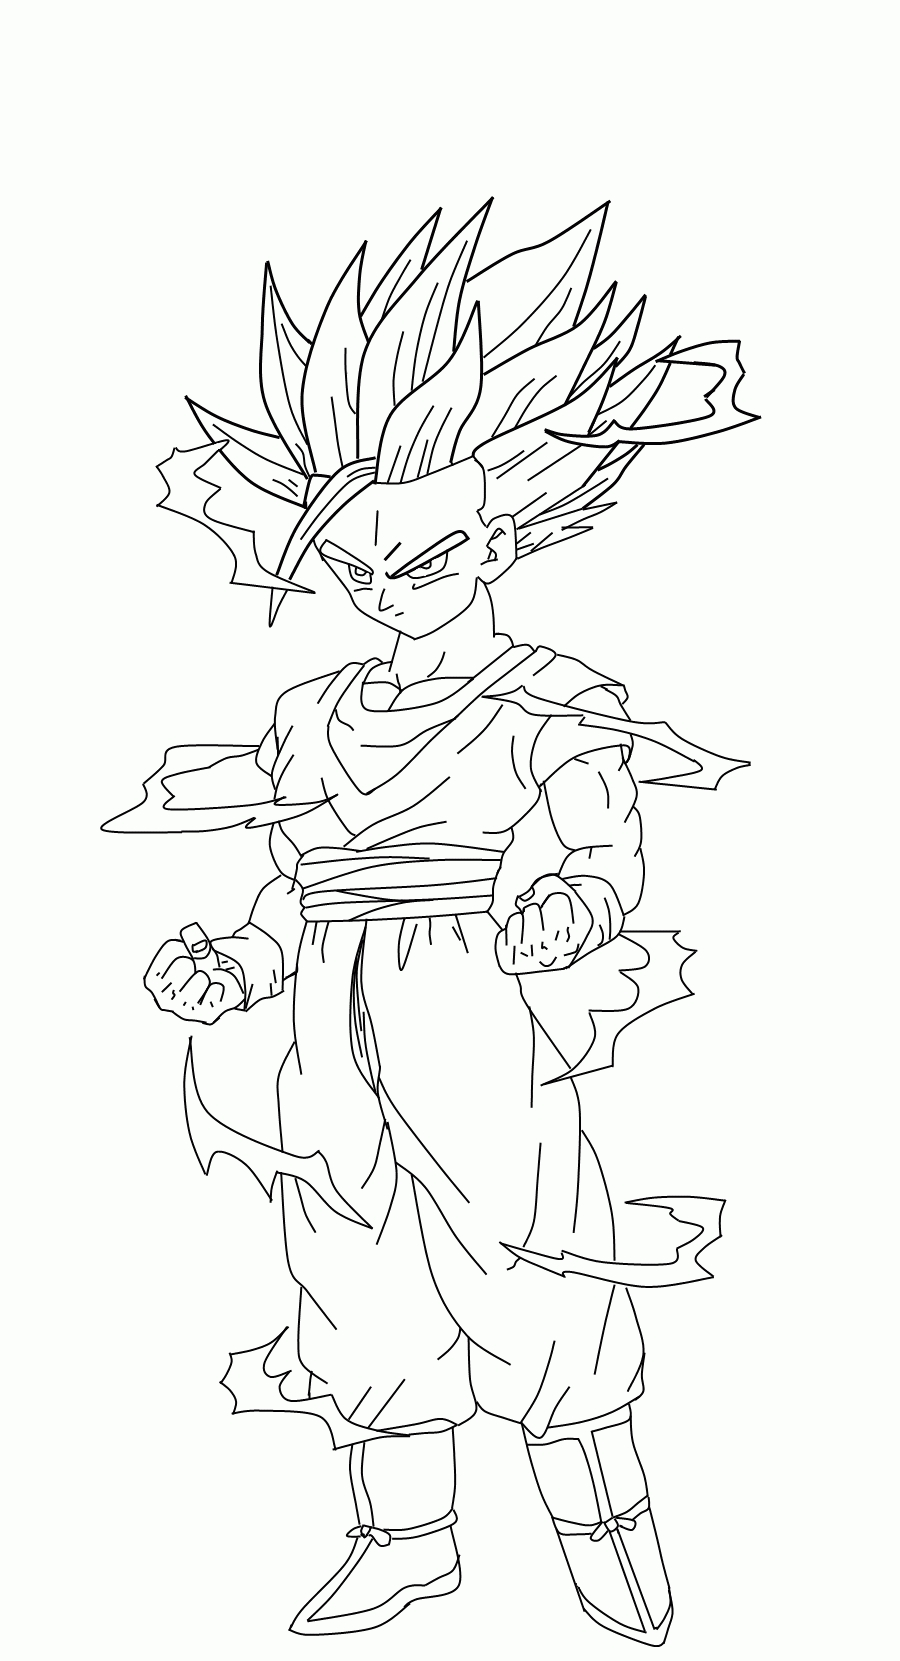 moana printable coloring pages - dbz coloring pages gohan